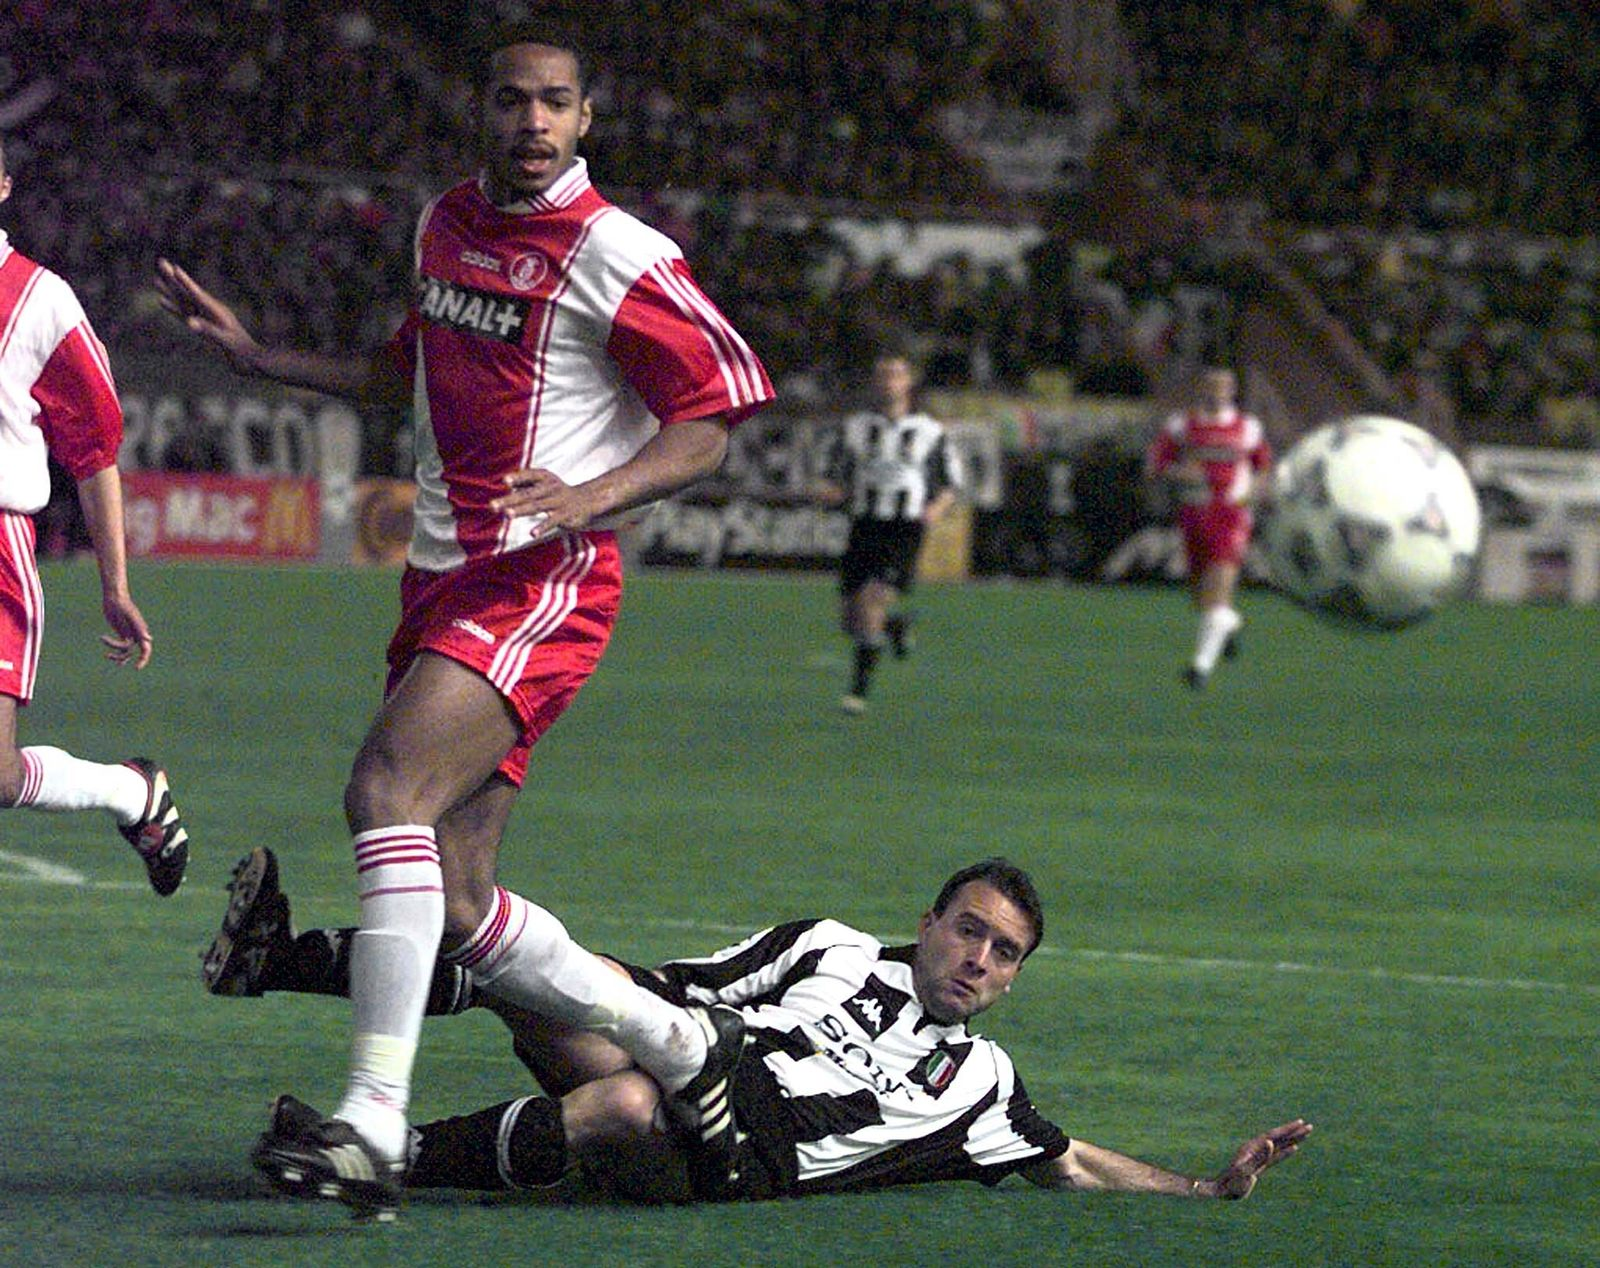 HENRY OF MONACO IS TACKLED BY BIRINDELLI OF JUVENTUS.